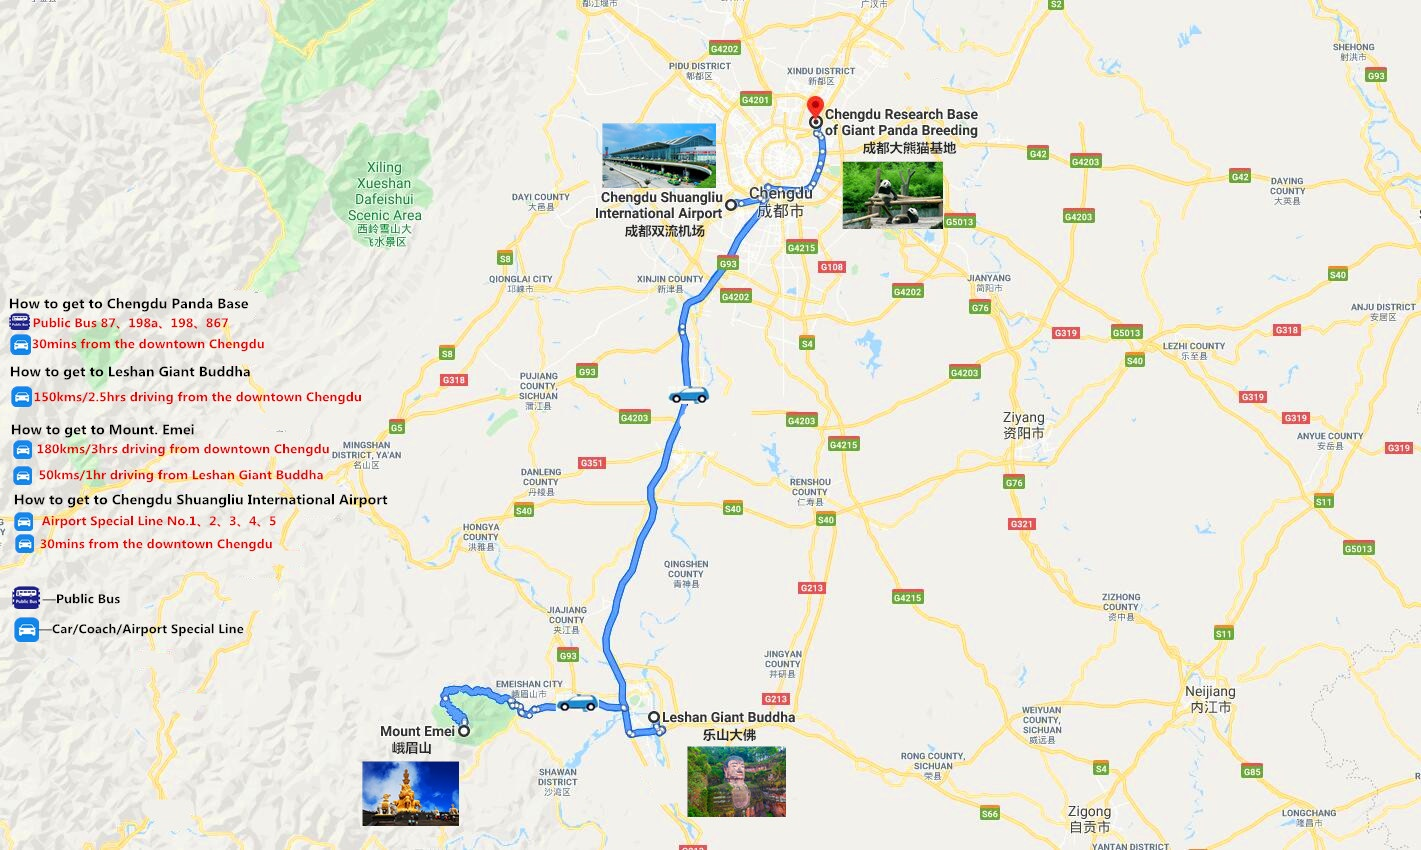 6-Days In-Depth Discovery Around Chengdu Travel Map